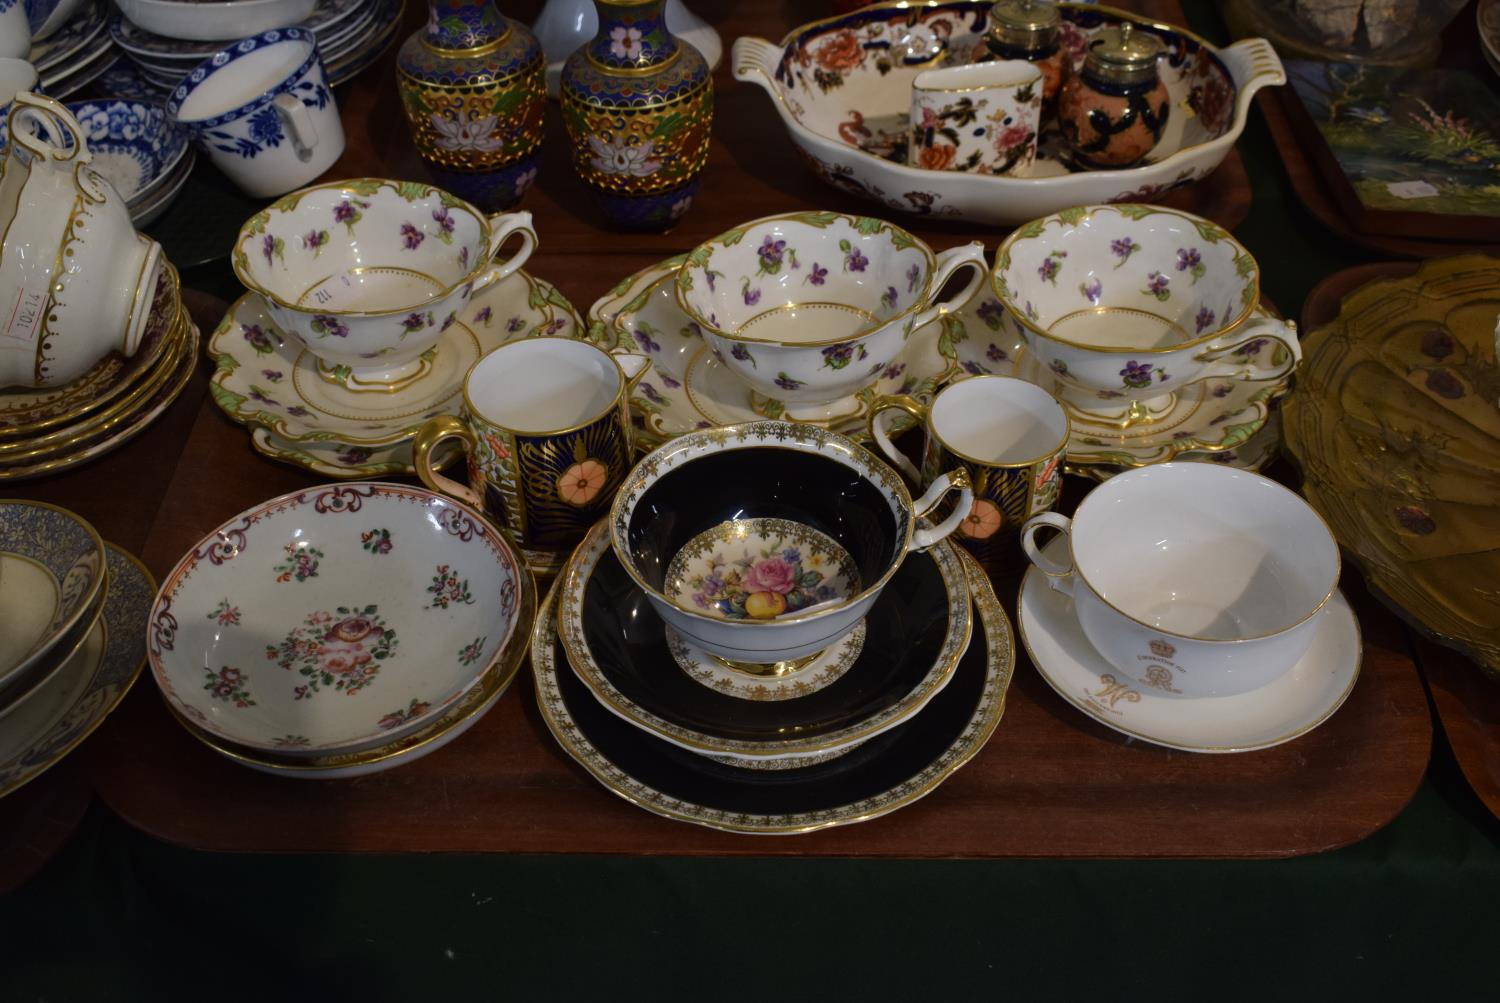 Lot 190 - A Collection of Various Cabinet Cups and Saucers, Davenport Jug and Coffee Can, Royal Doulton